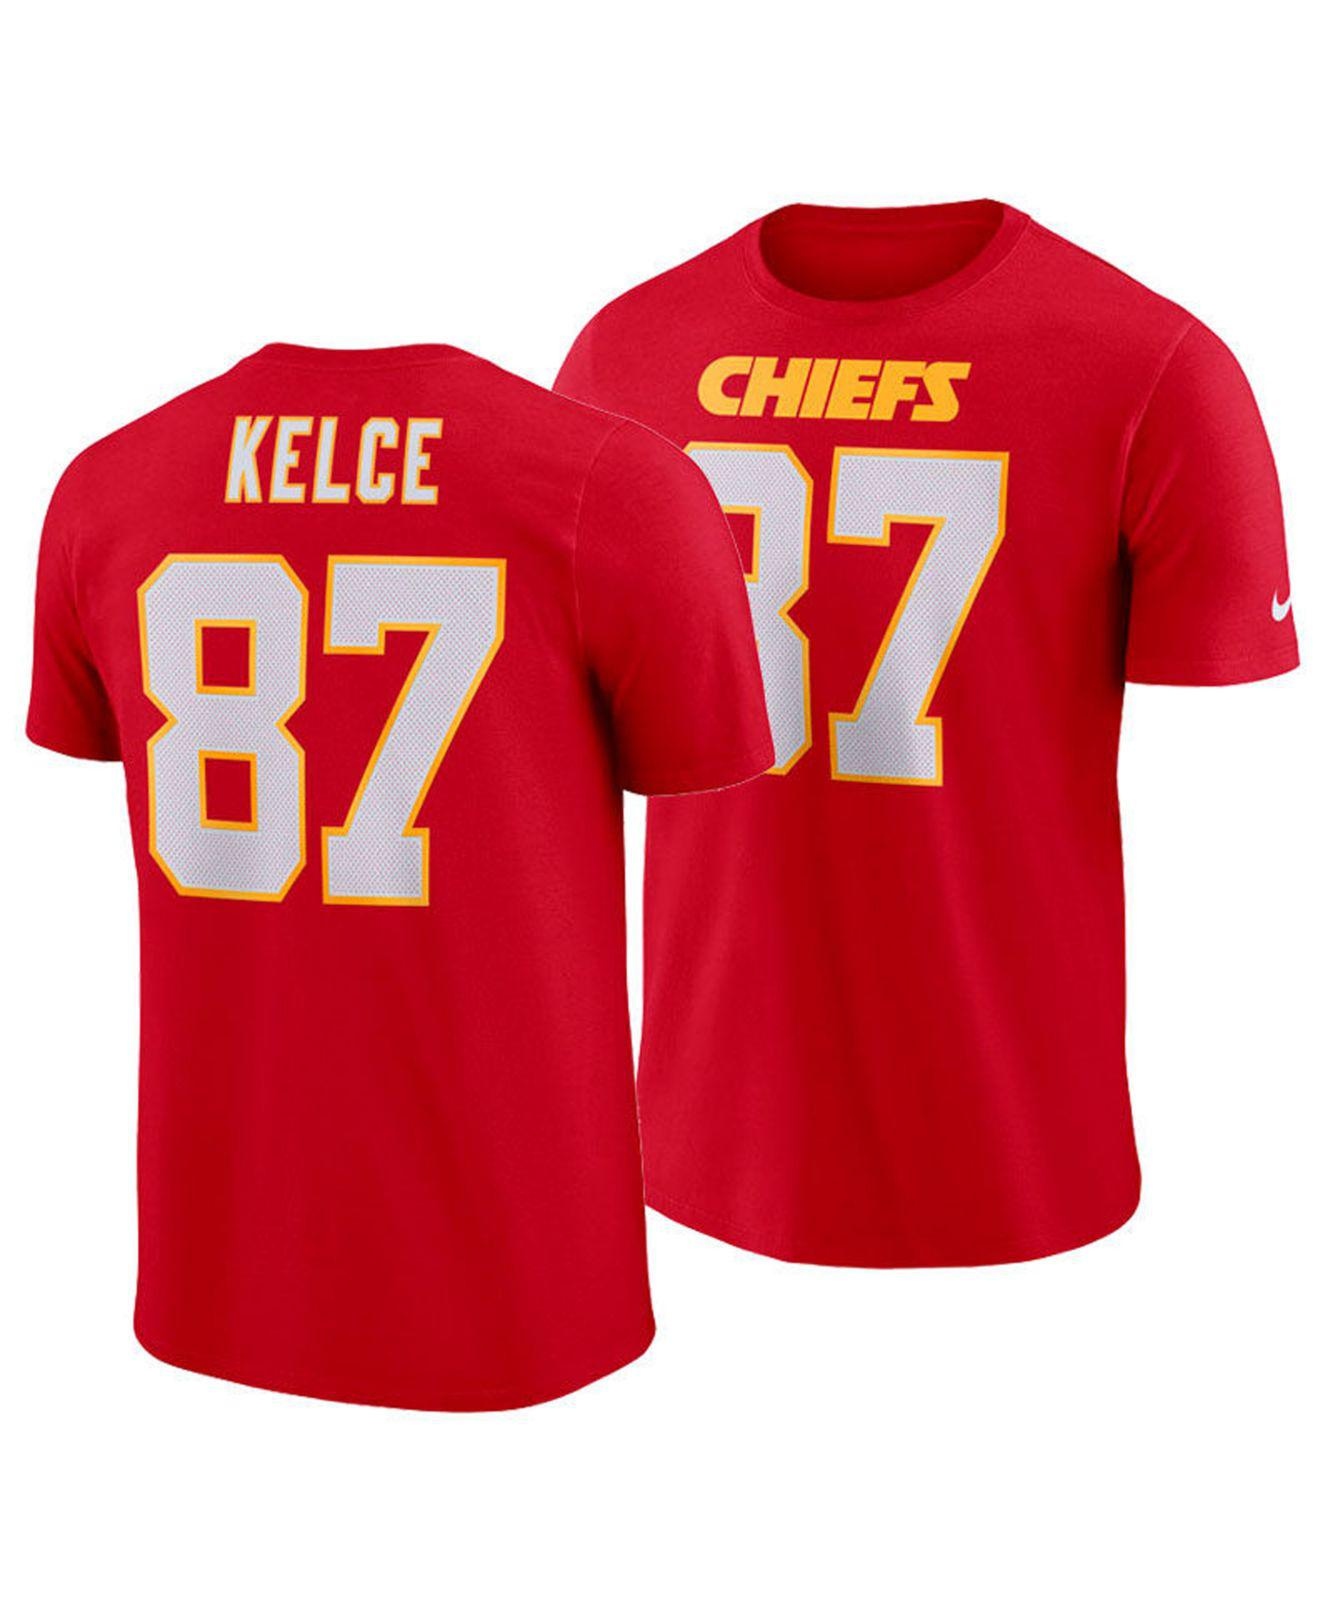 3f4c969d7 Nike. Men s Red Travis Kelce Kansas City Chiefs Pride Name And Number  Wordmark T-shirt